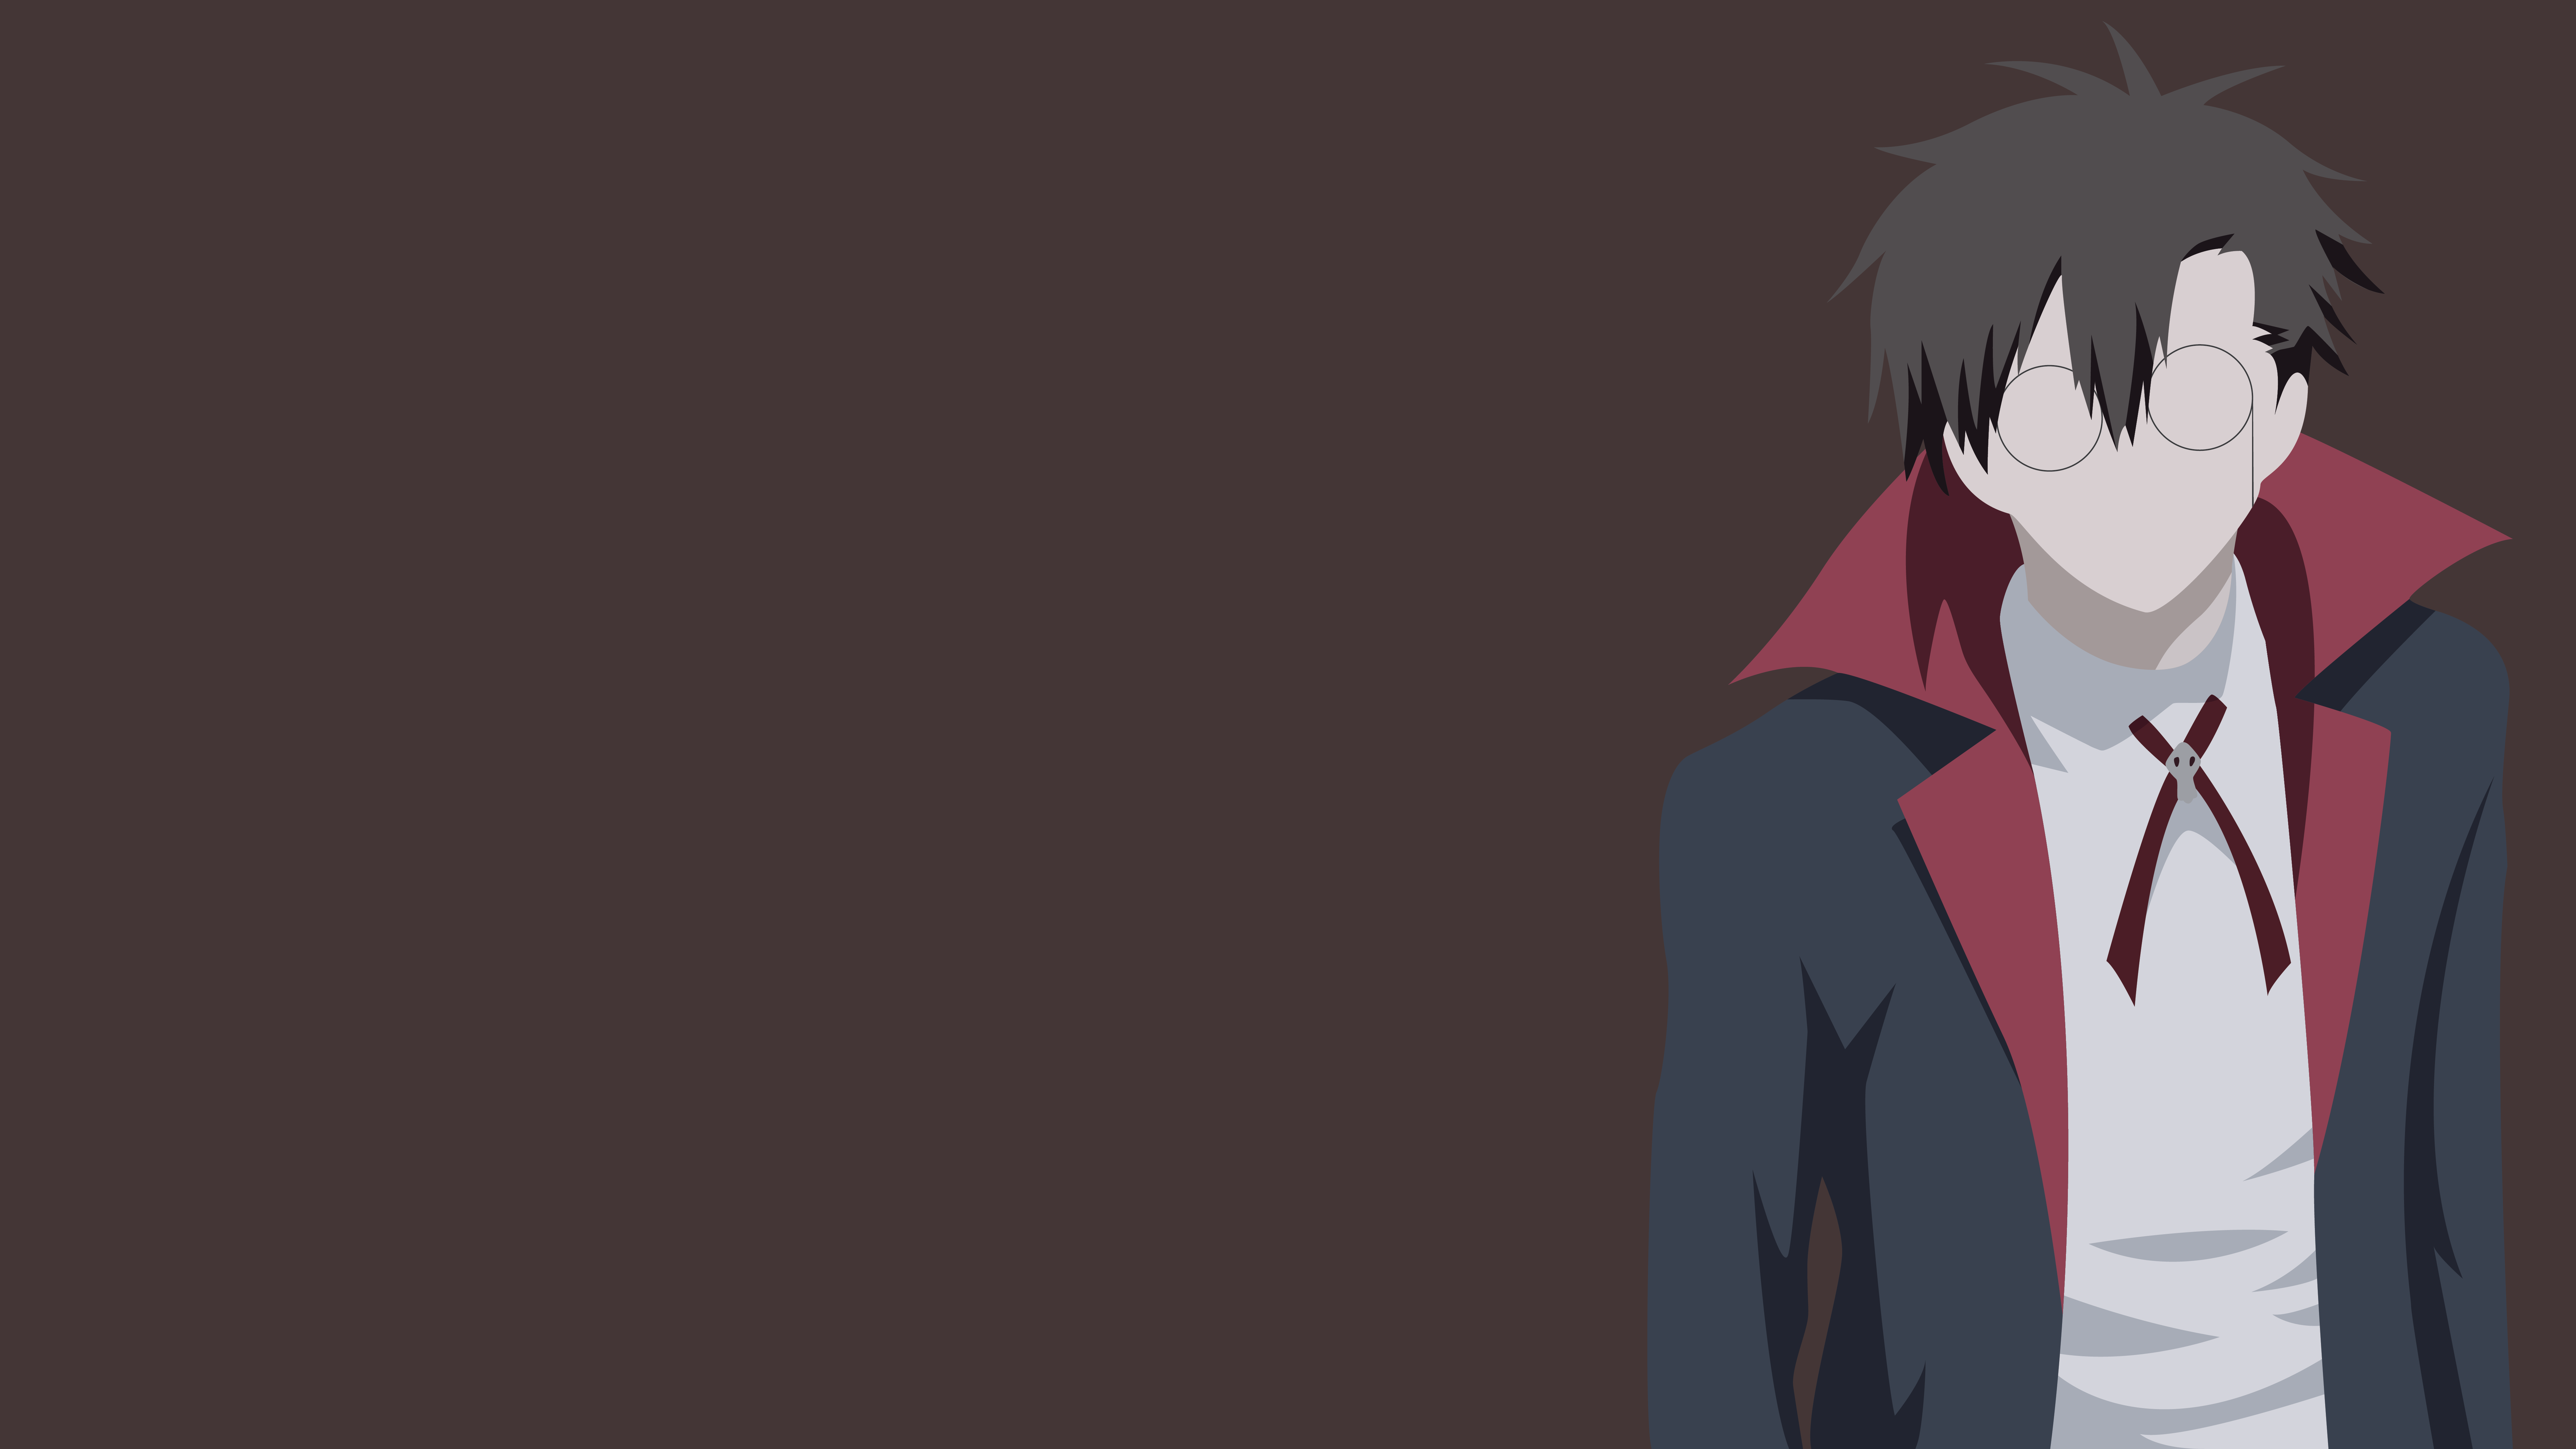 Braz - Blood Lad (Minimalist Wallpaper) by Atomy9 on ...